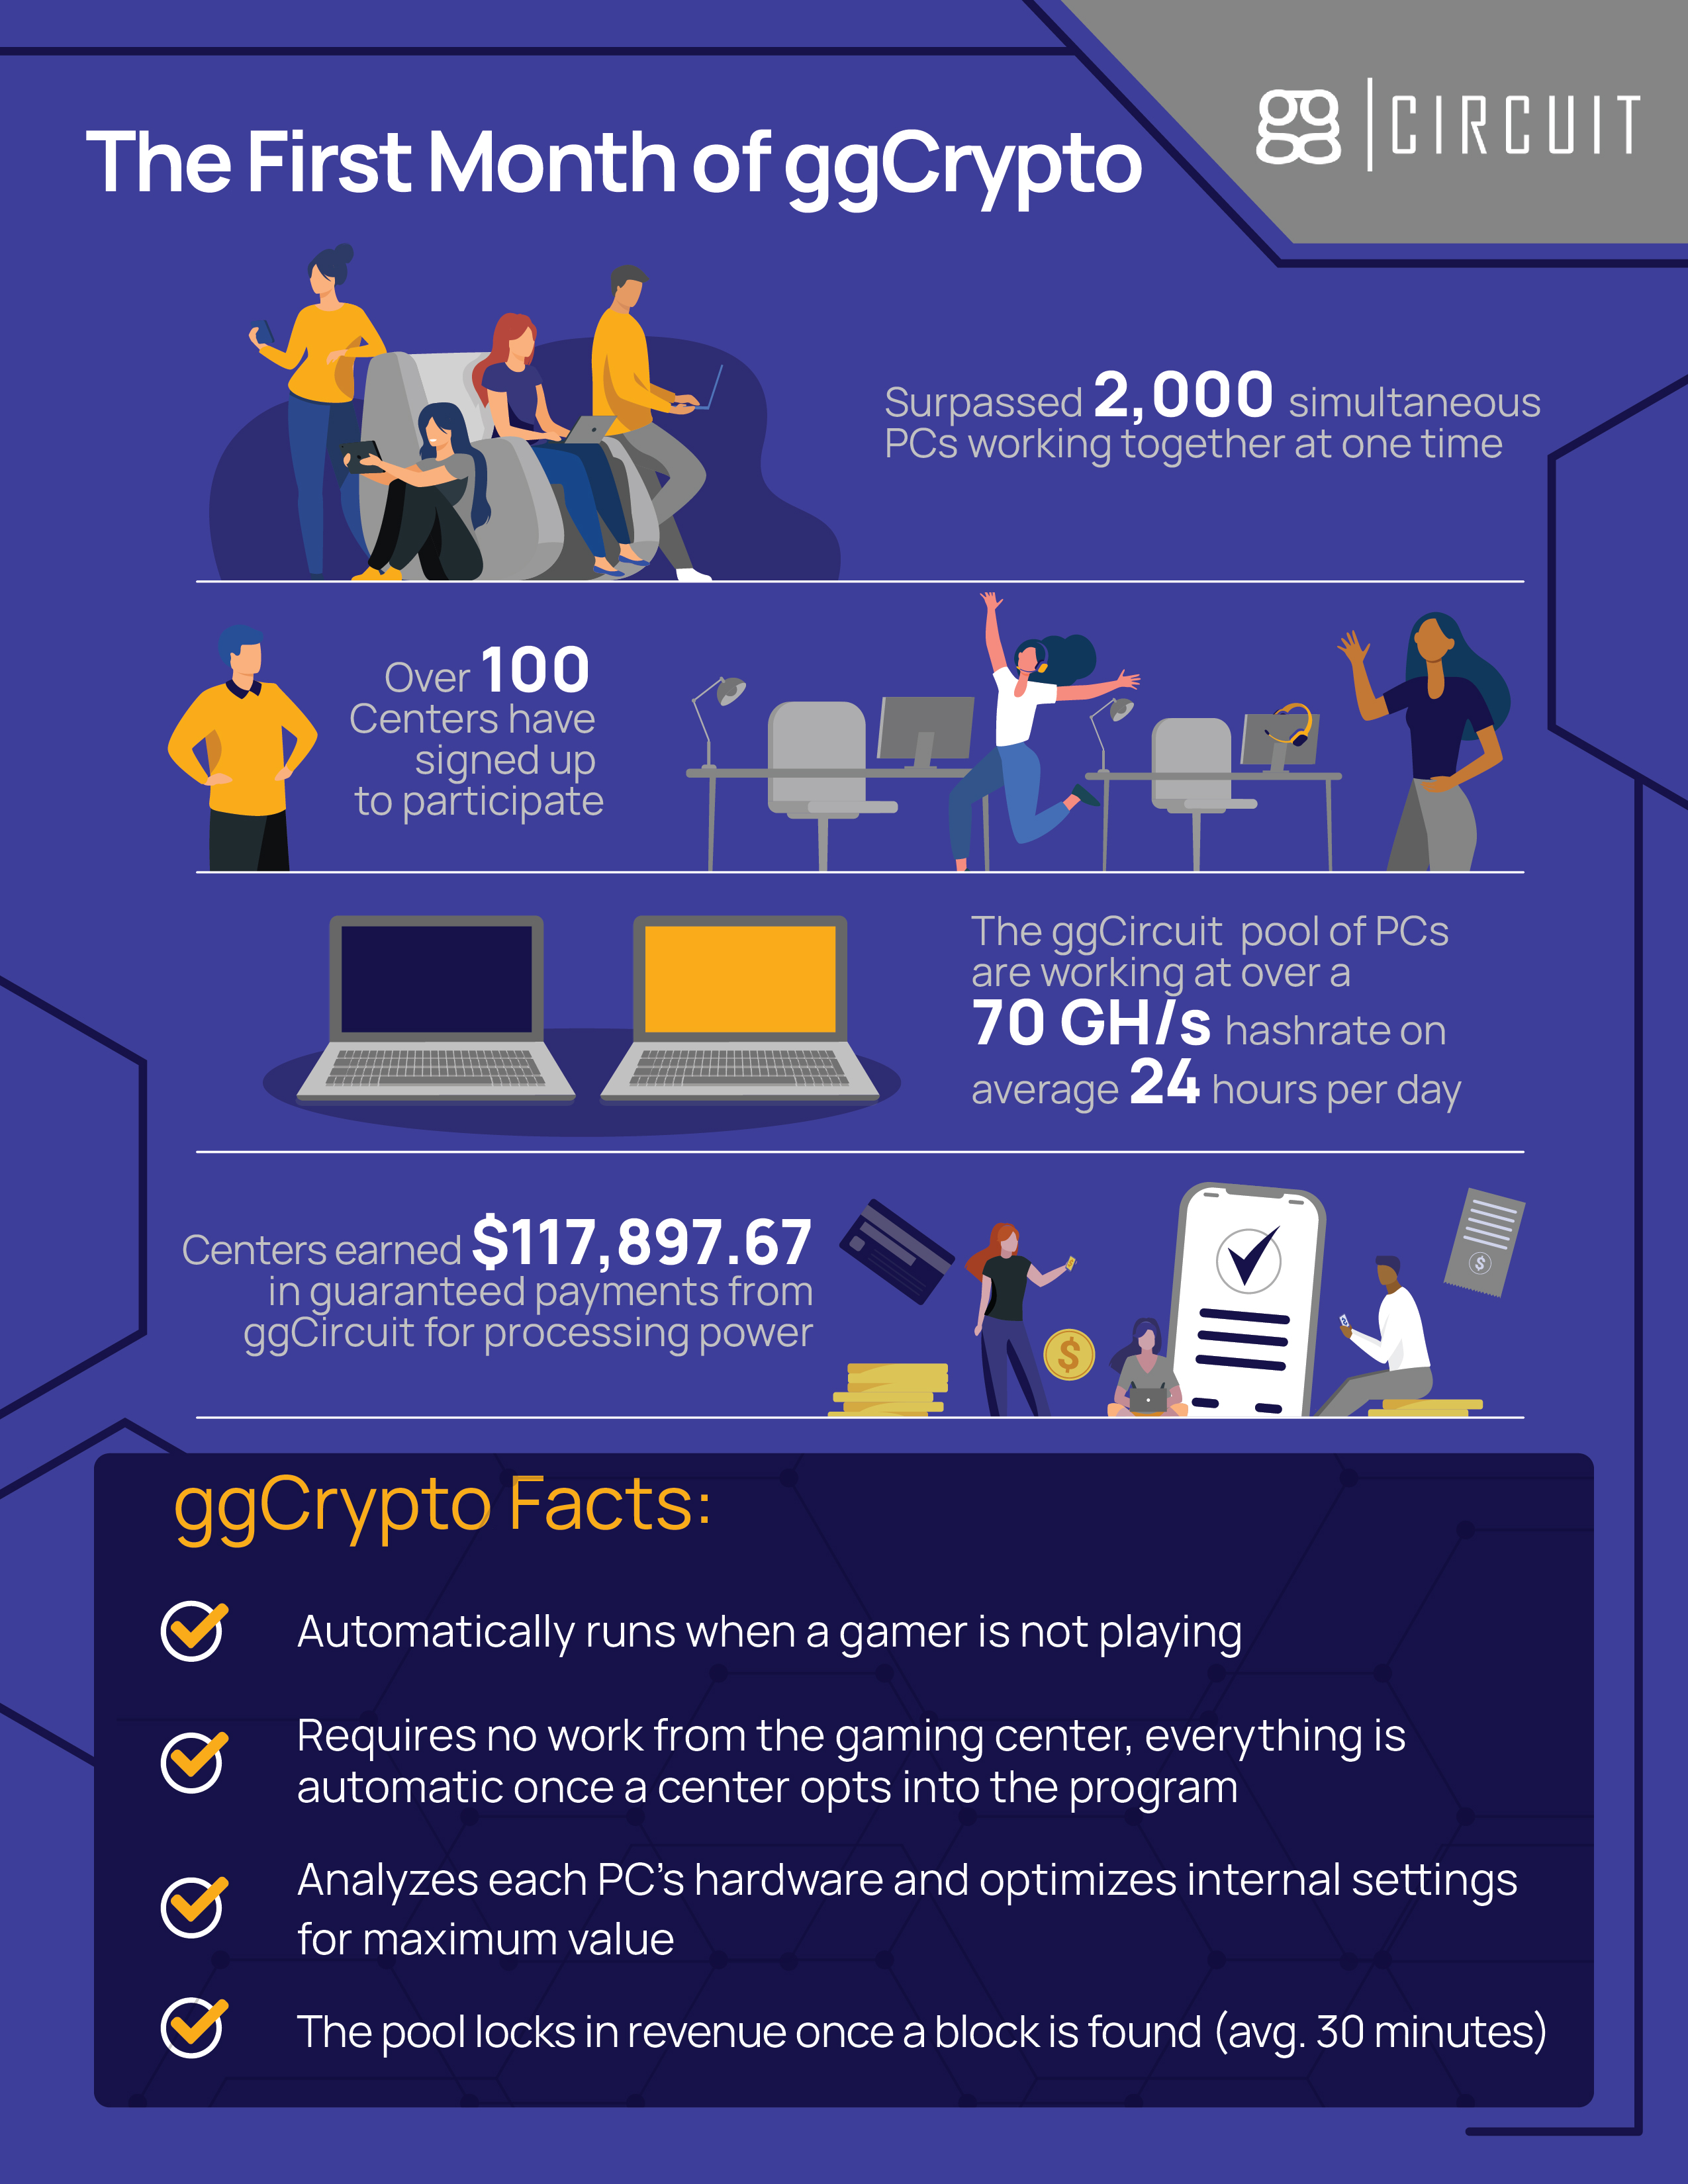 The first month of ggCrypto - esports centers earned $117,897.67 in guaranteed payments!